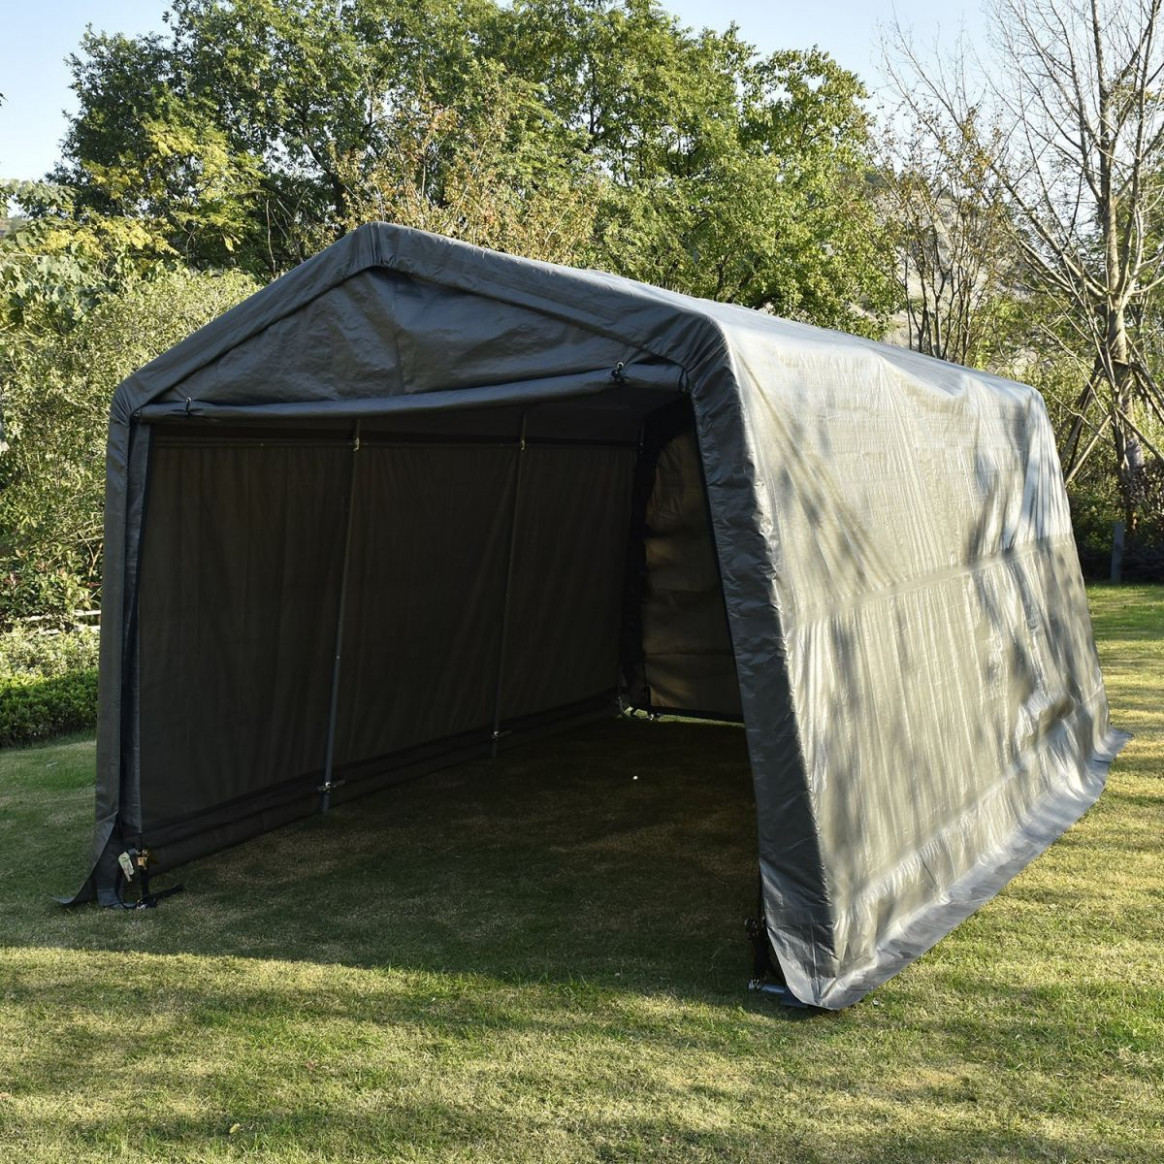 12 Portable Carport Shelters to Take Care of Your Car